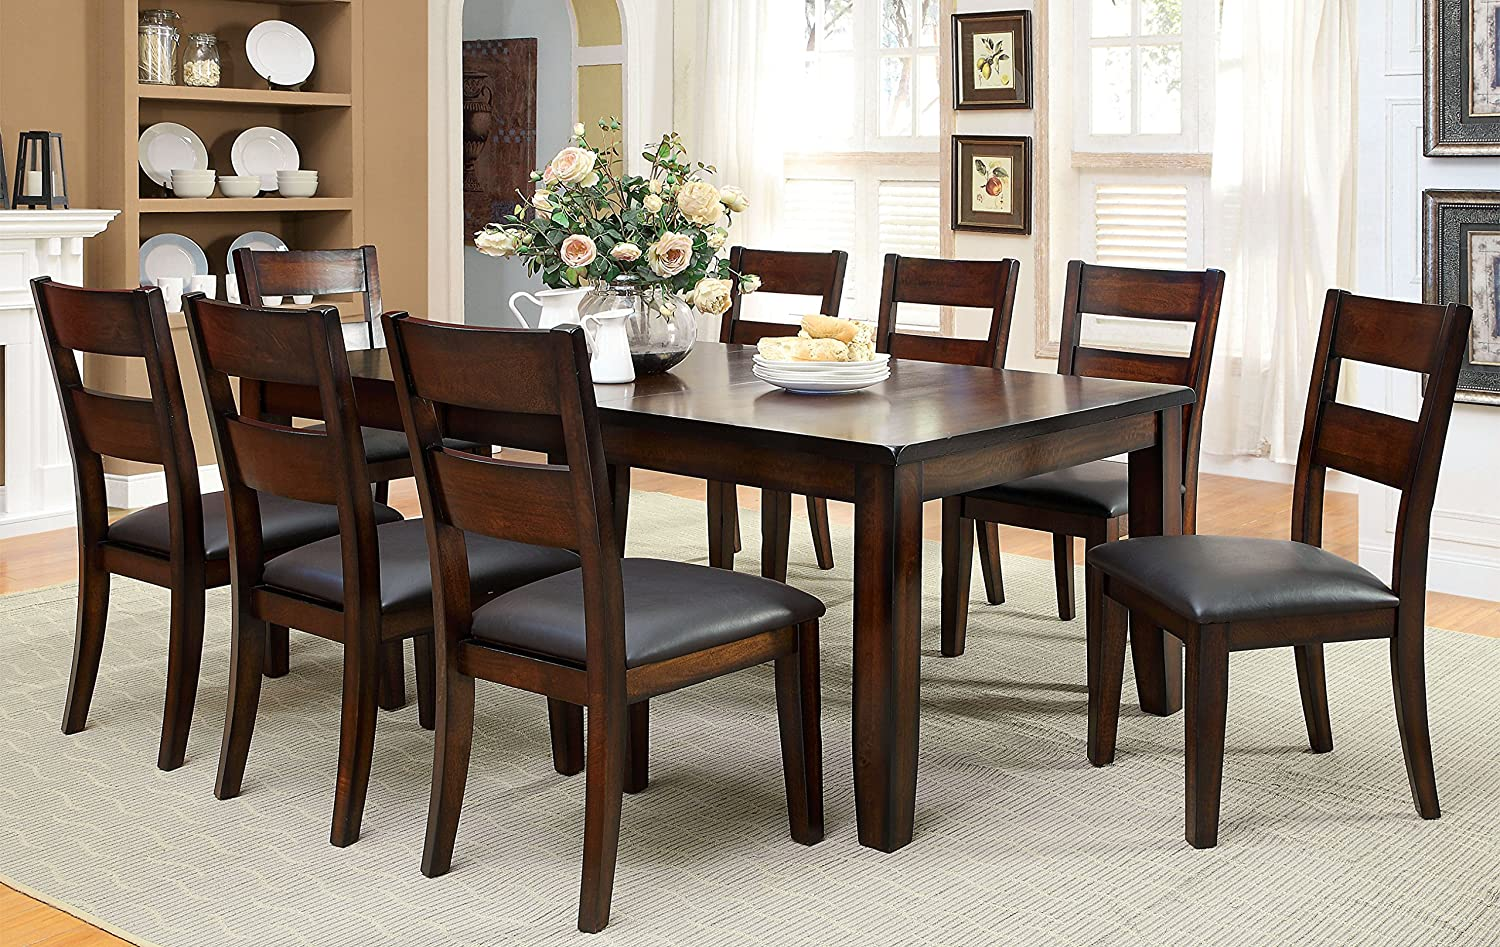 Dark Wood Dining Room Chairs bm deep silver dining room with dark wood floors beautiful patterned rug and blue chairs and dark wood table benjamin moore deep silver Amazoncom Furniture Of America Dallas 9 Piece Transitional Dining Set Dark Cherry Table Chair Sets